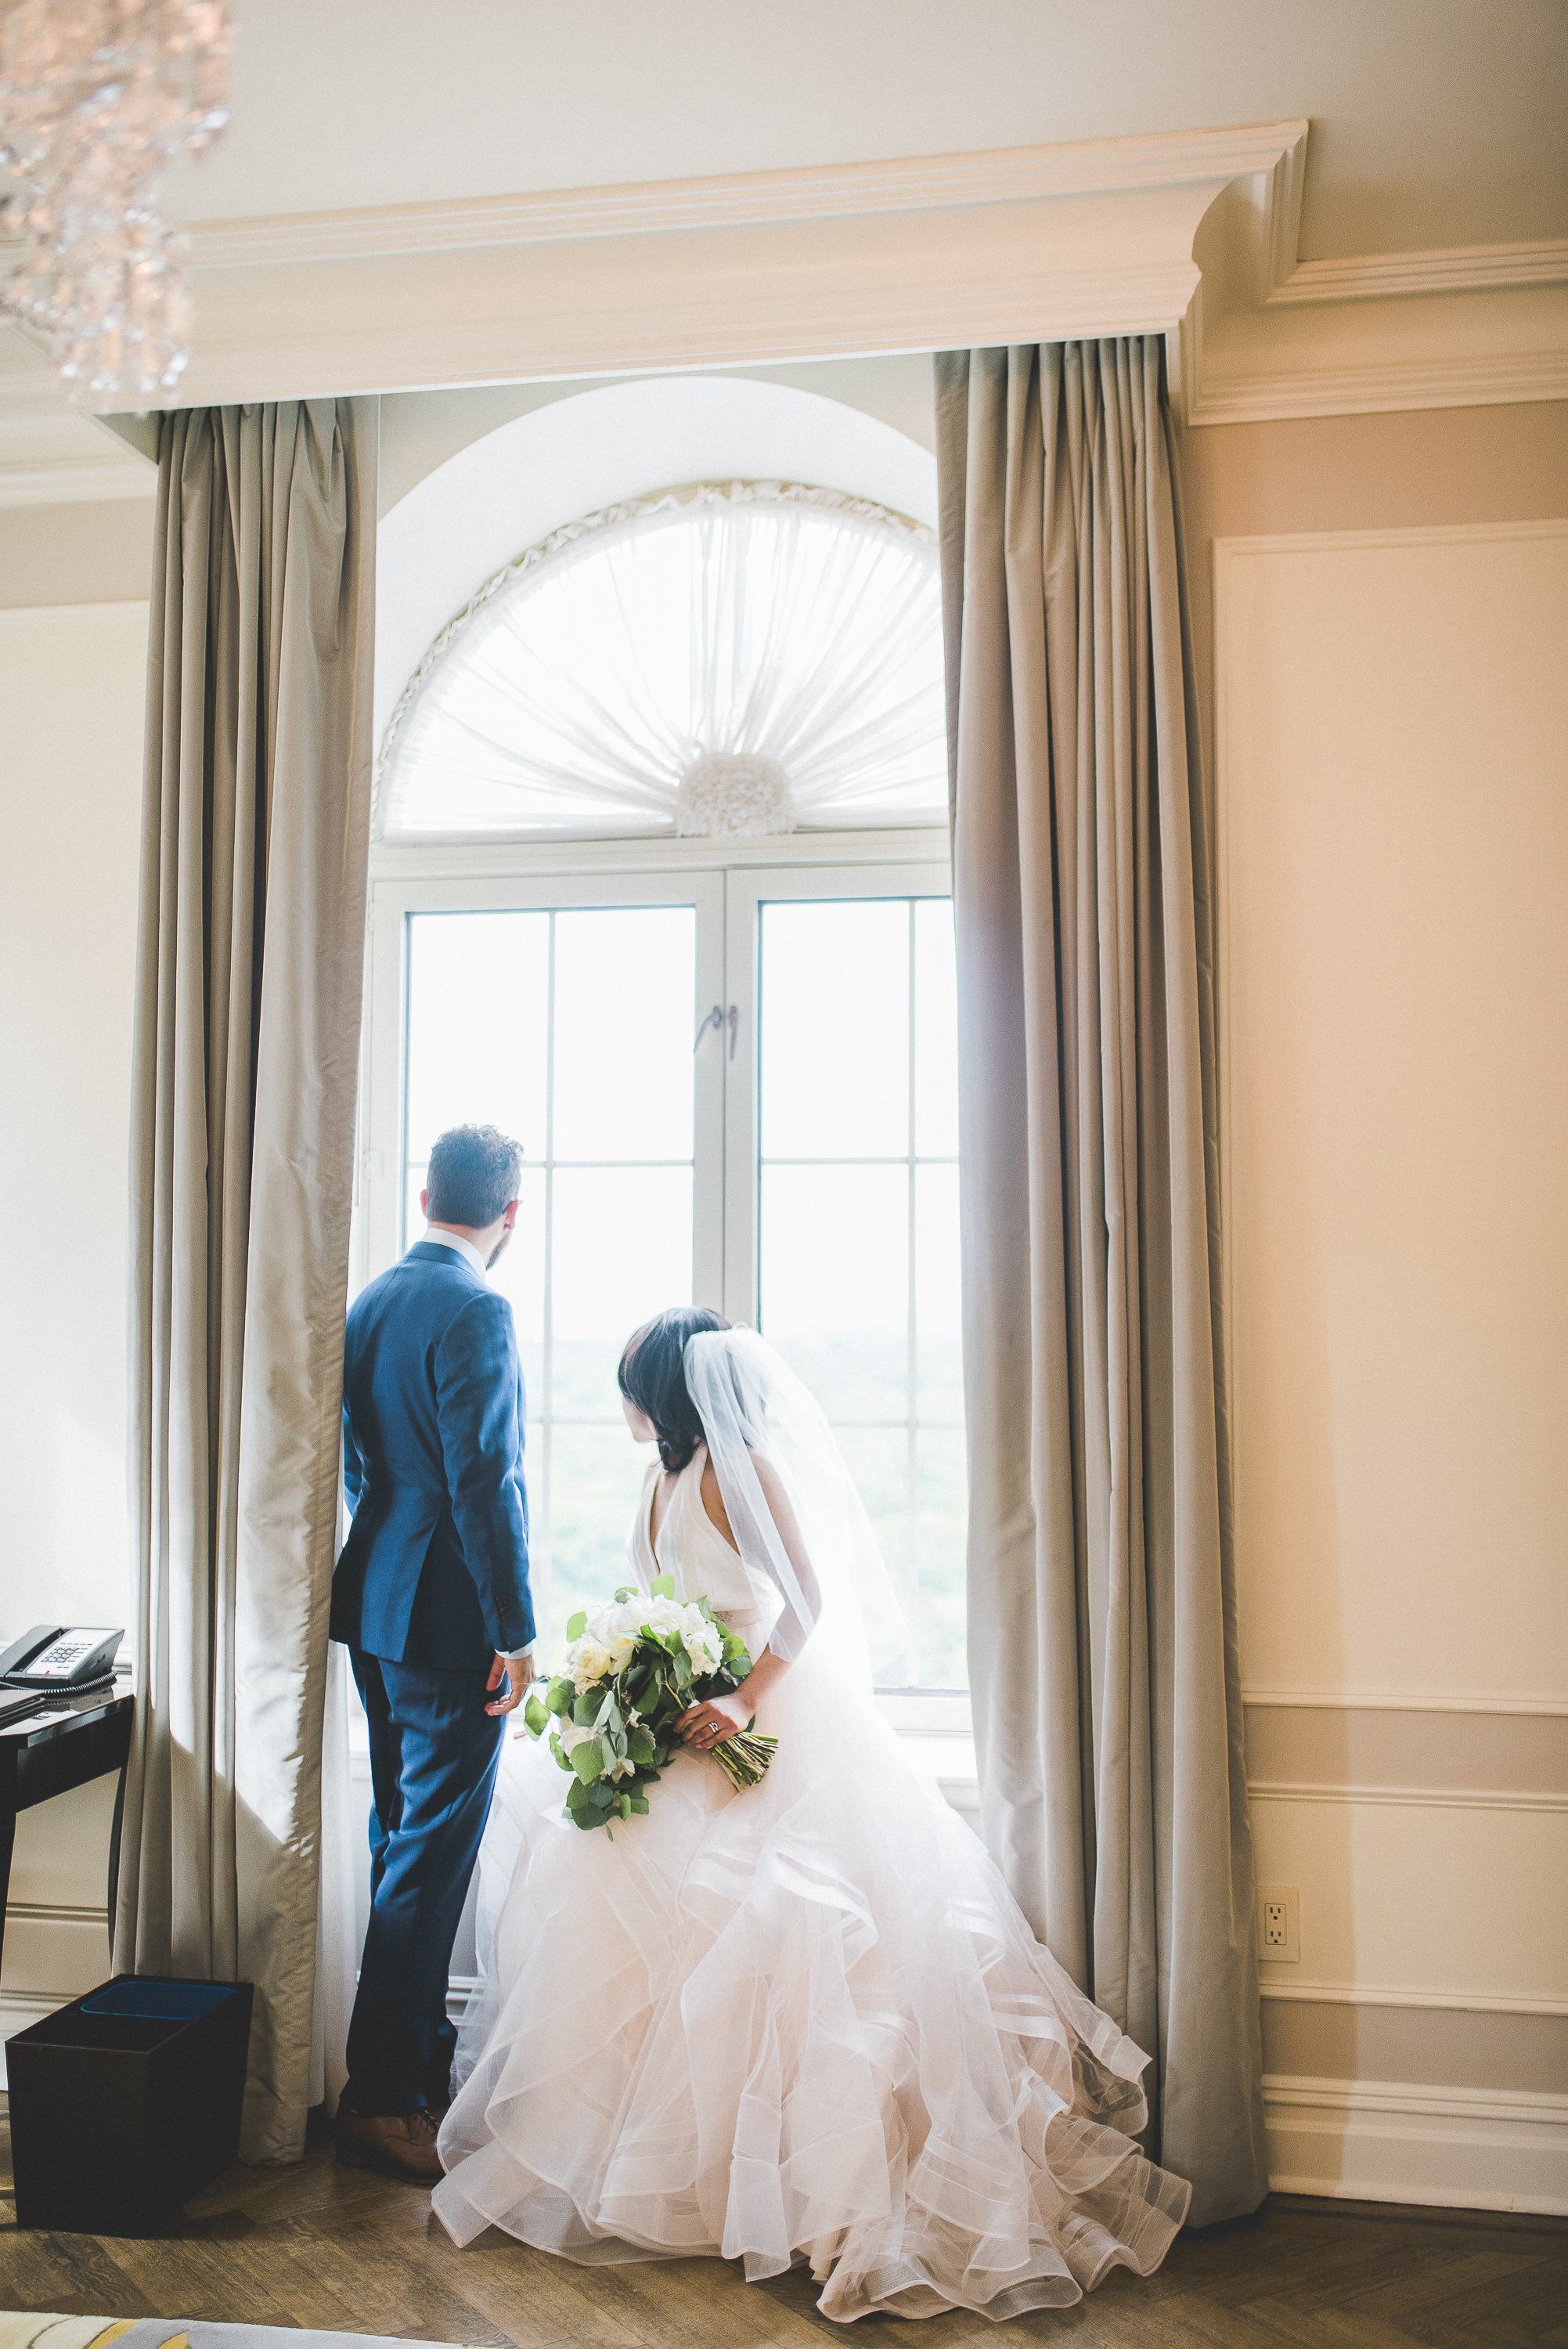 Bride and groom in Plaza Hotel Suite looking out Picture Window NYC wedding inspiration